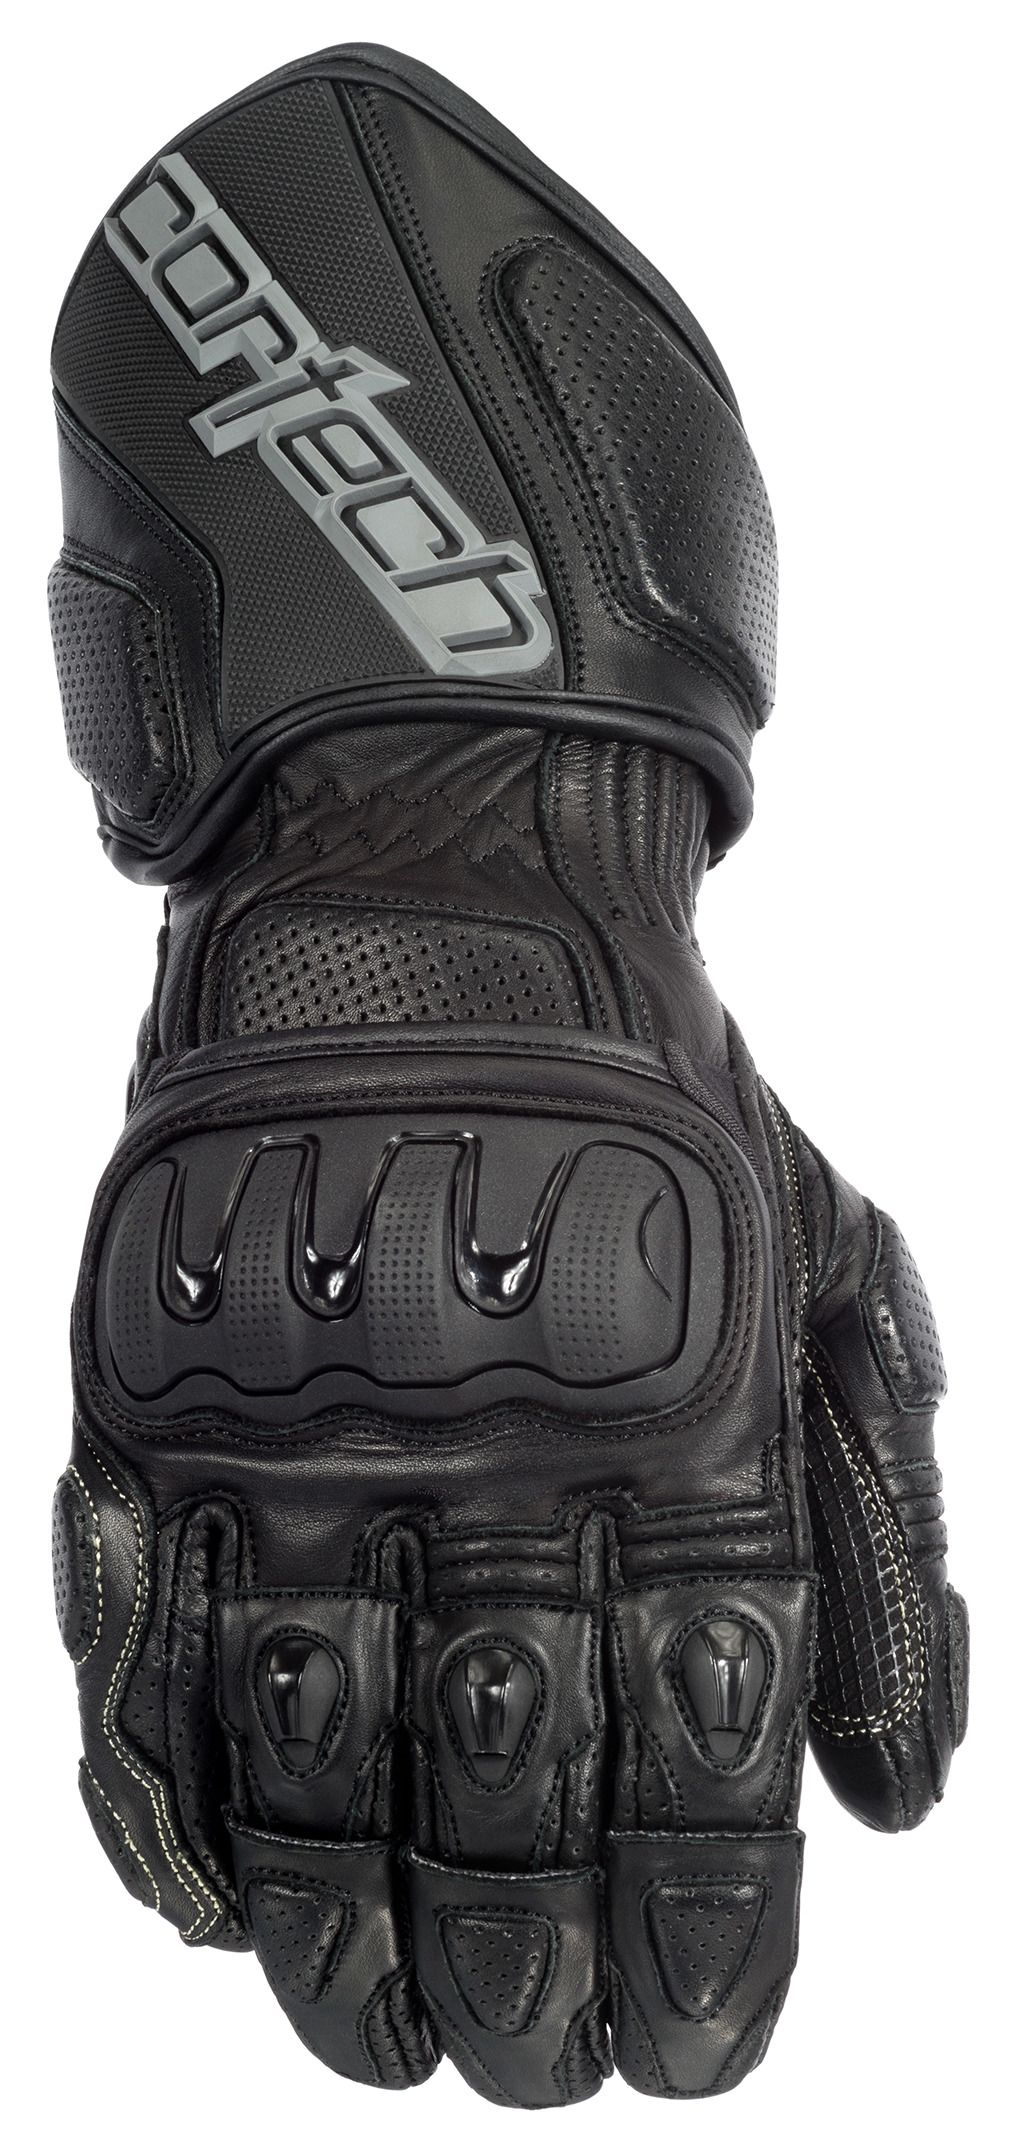 Motorcycle gloves tight or loose - Motorcycle Gloves Tight Or Loose 20